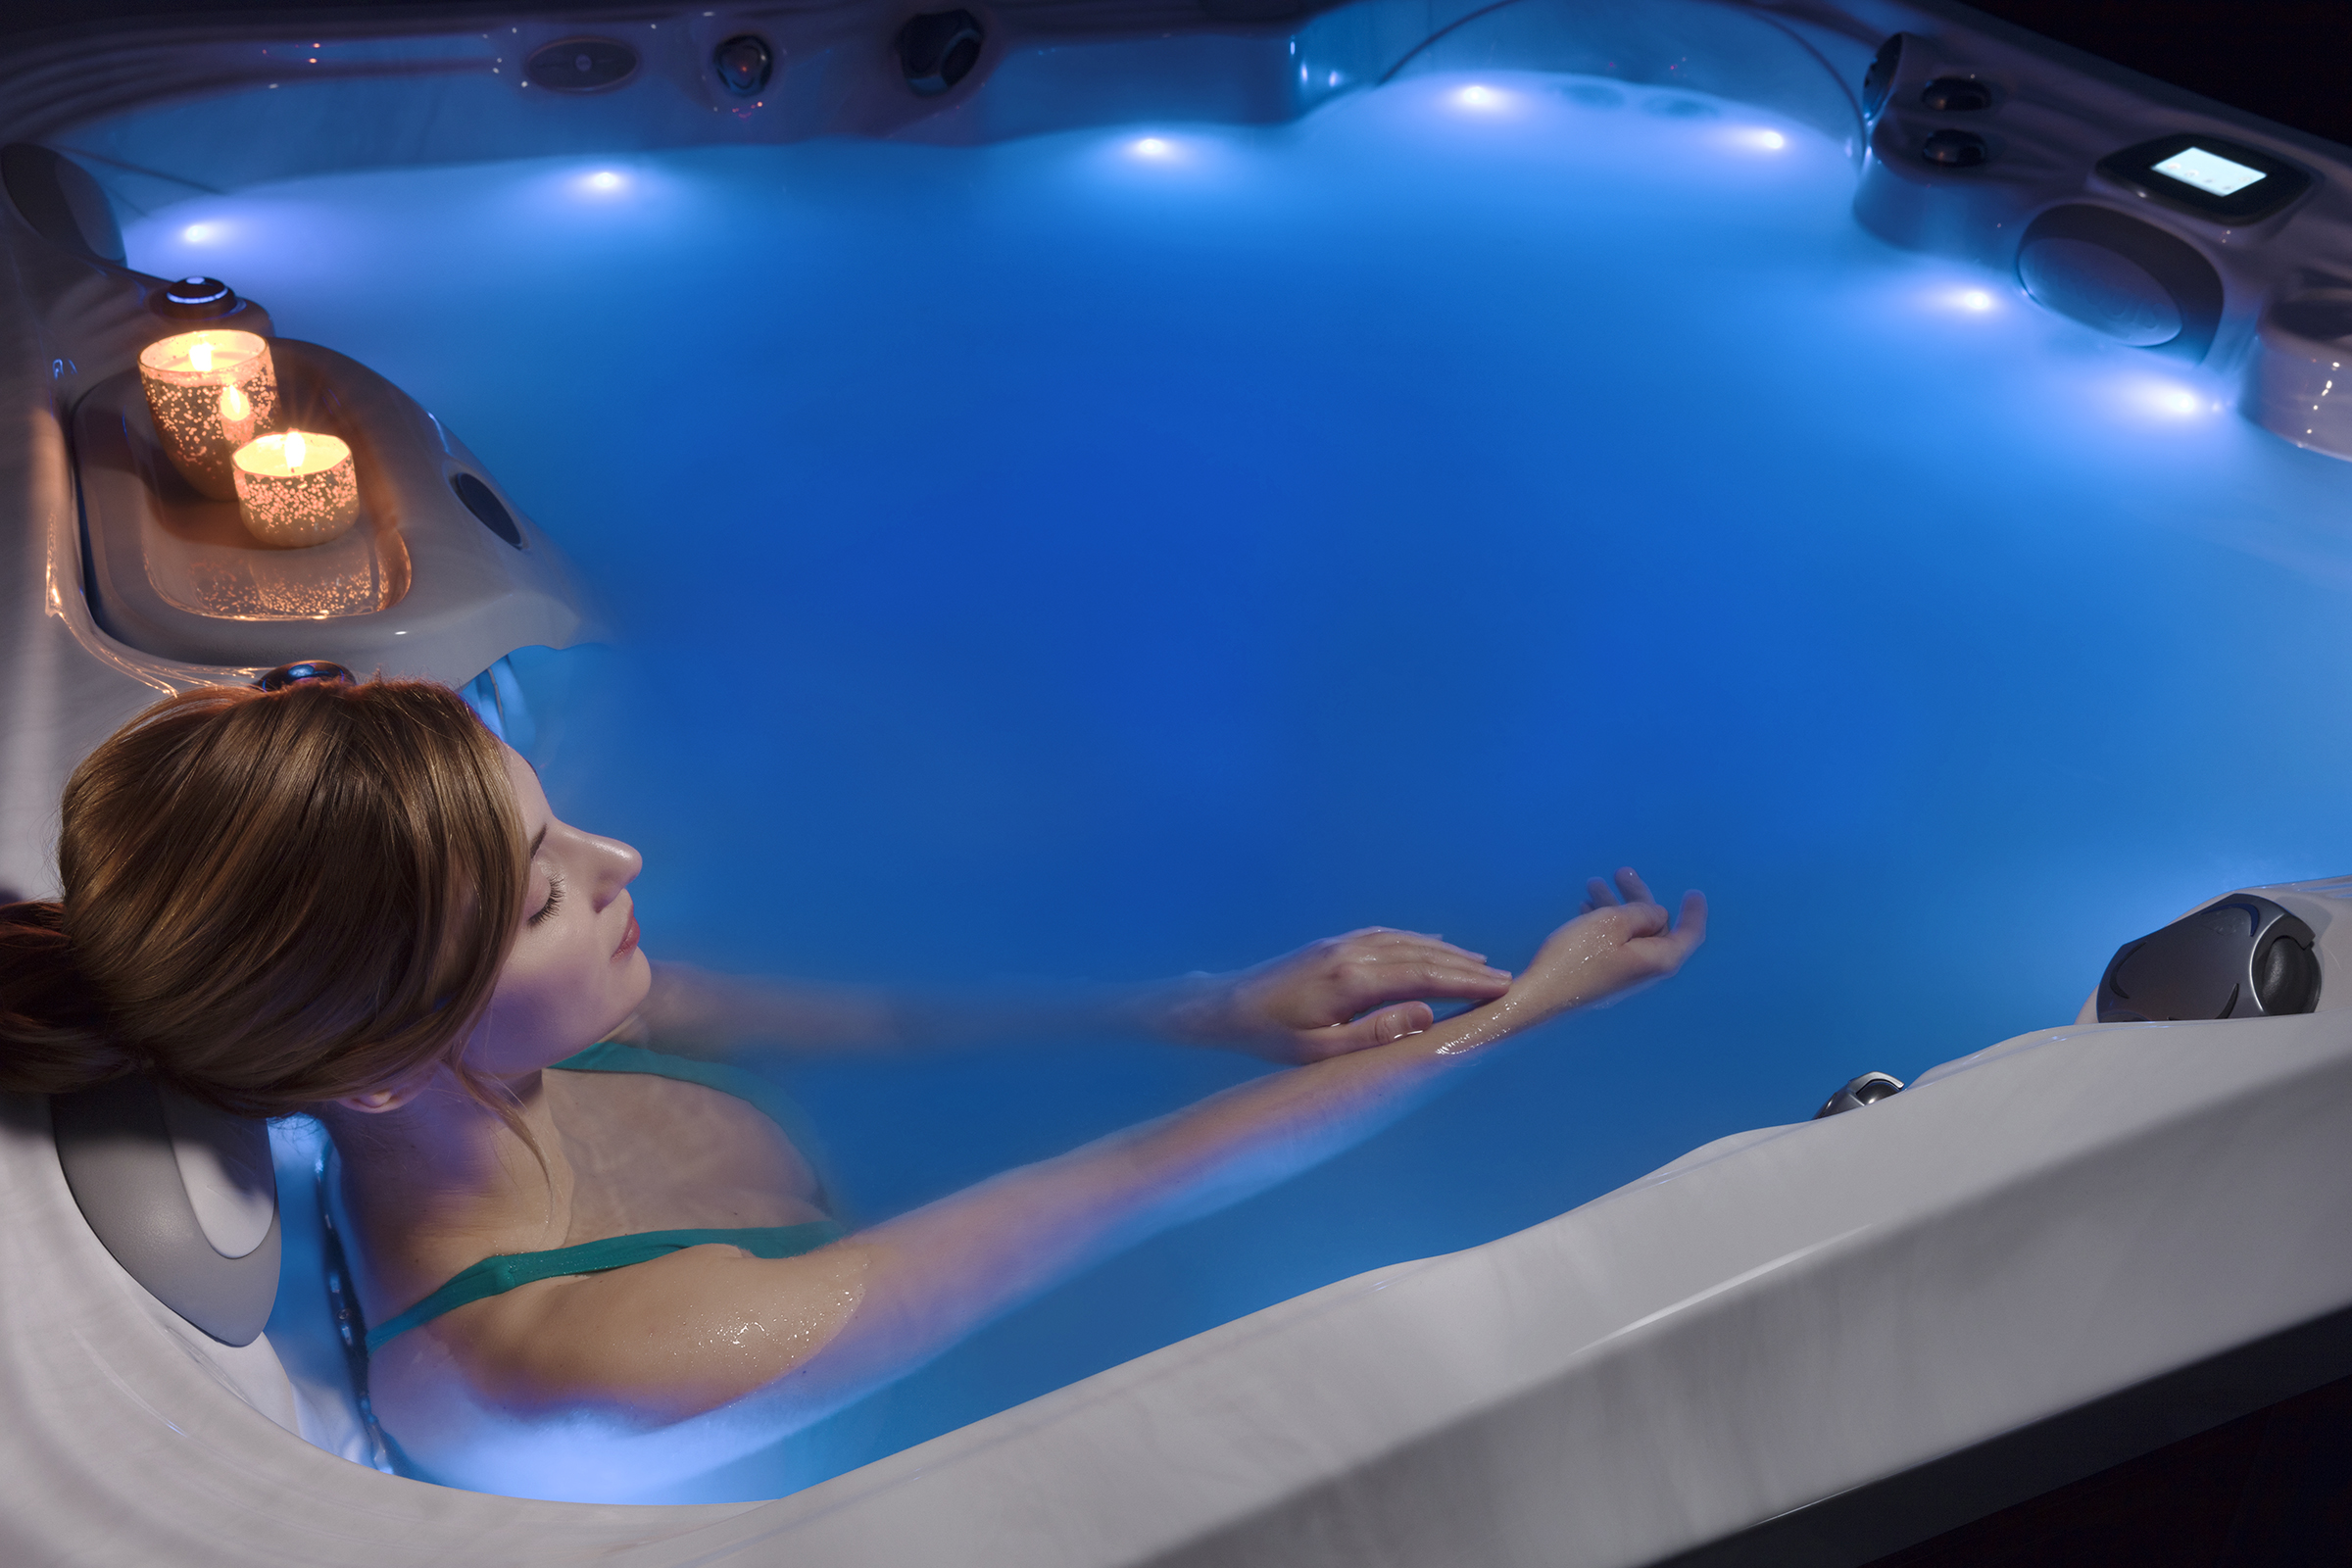 How long should you stay in the hot tub